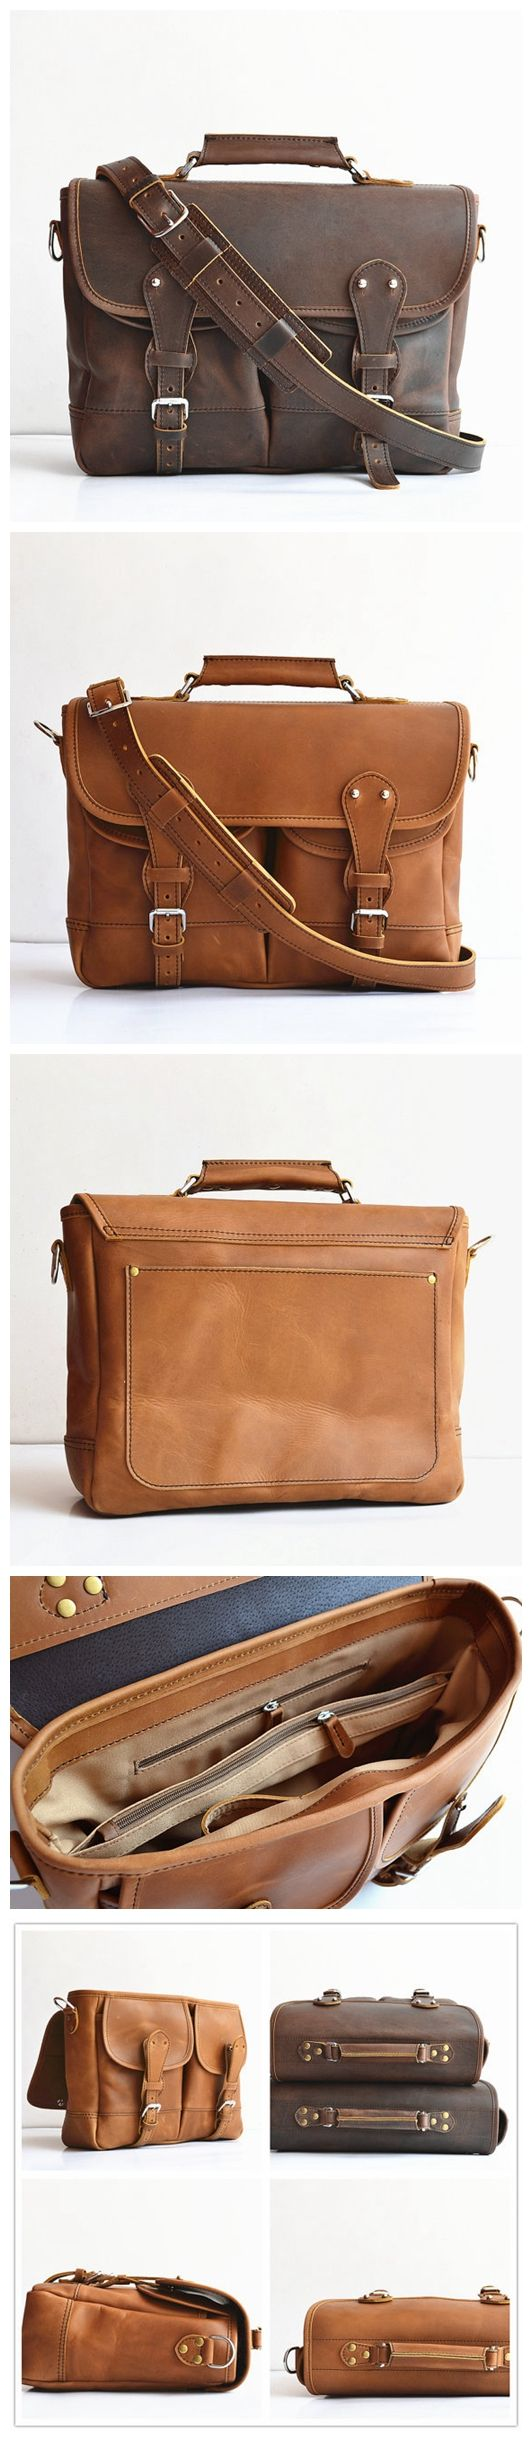 Handmade Men's Leather Briefcase Leather Angler Bag Fisher Man Bag Leather Messenger Bag Leather Satchel Leather MacBook Bag For Men Women